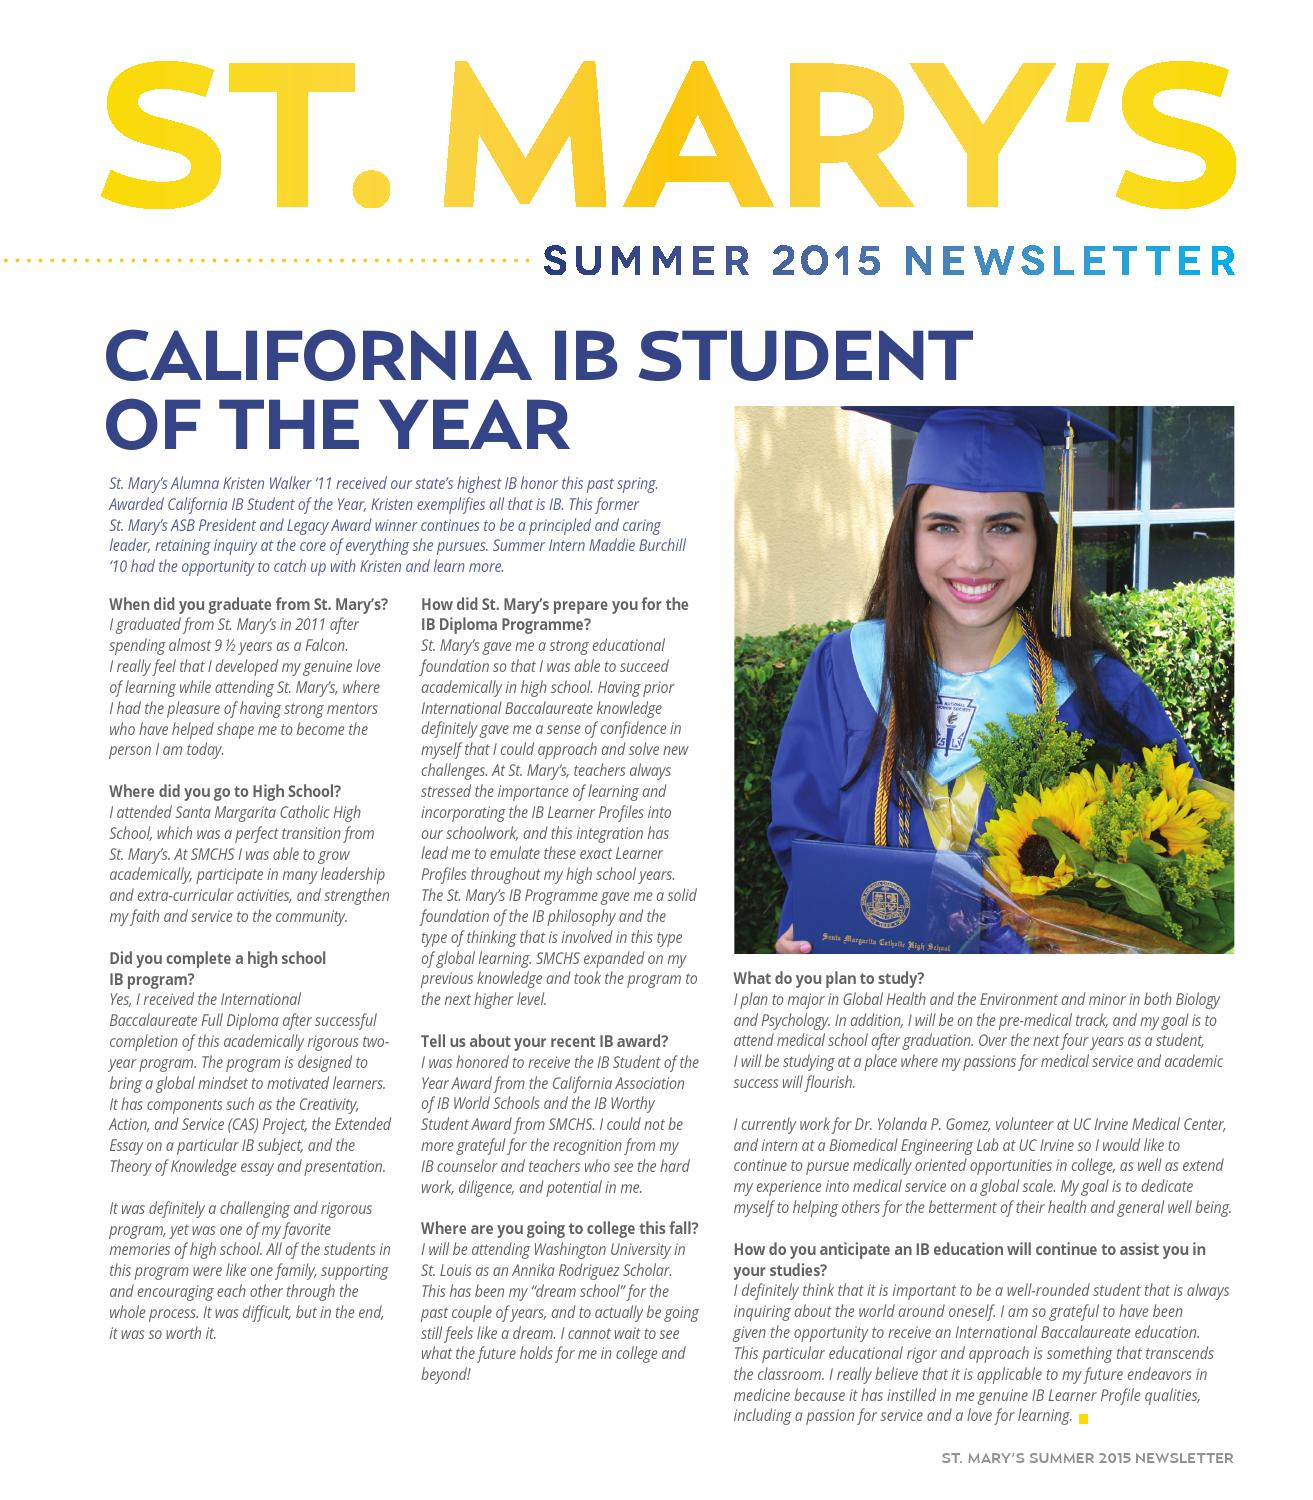 Summer 2015 Newsletter by St  Mary's School - issuu